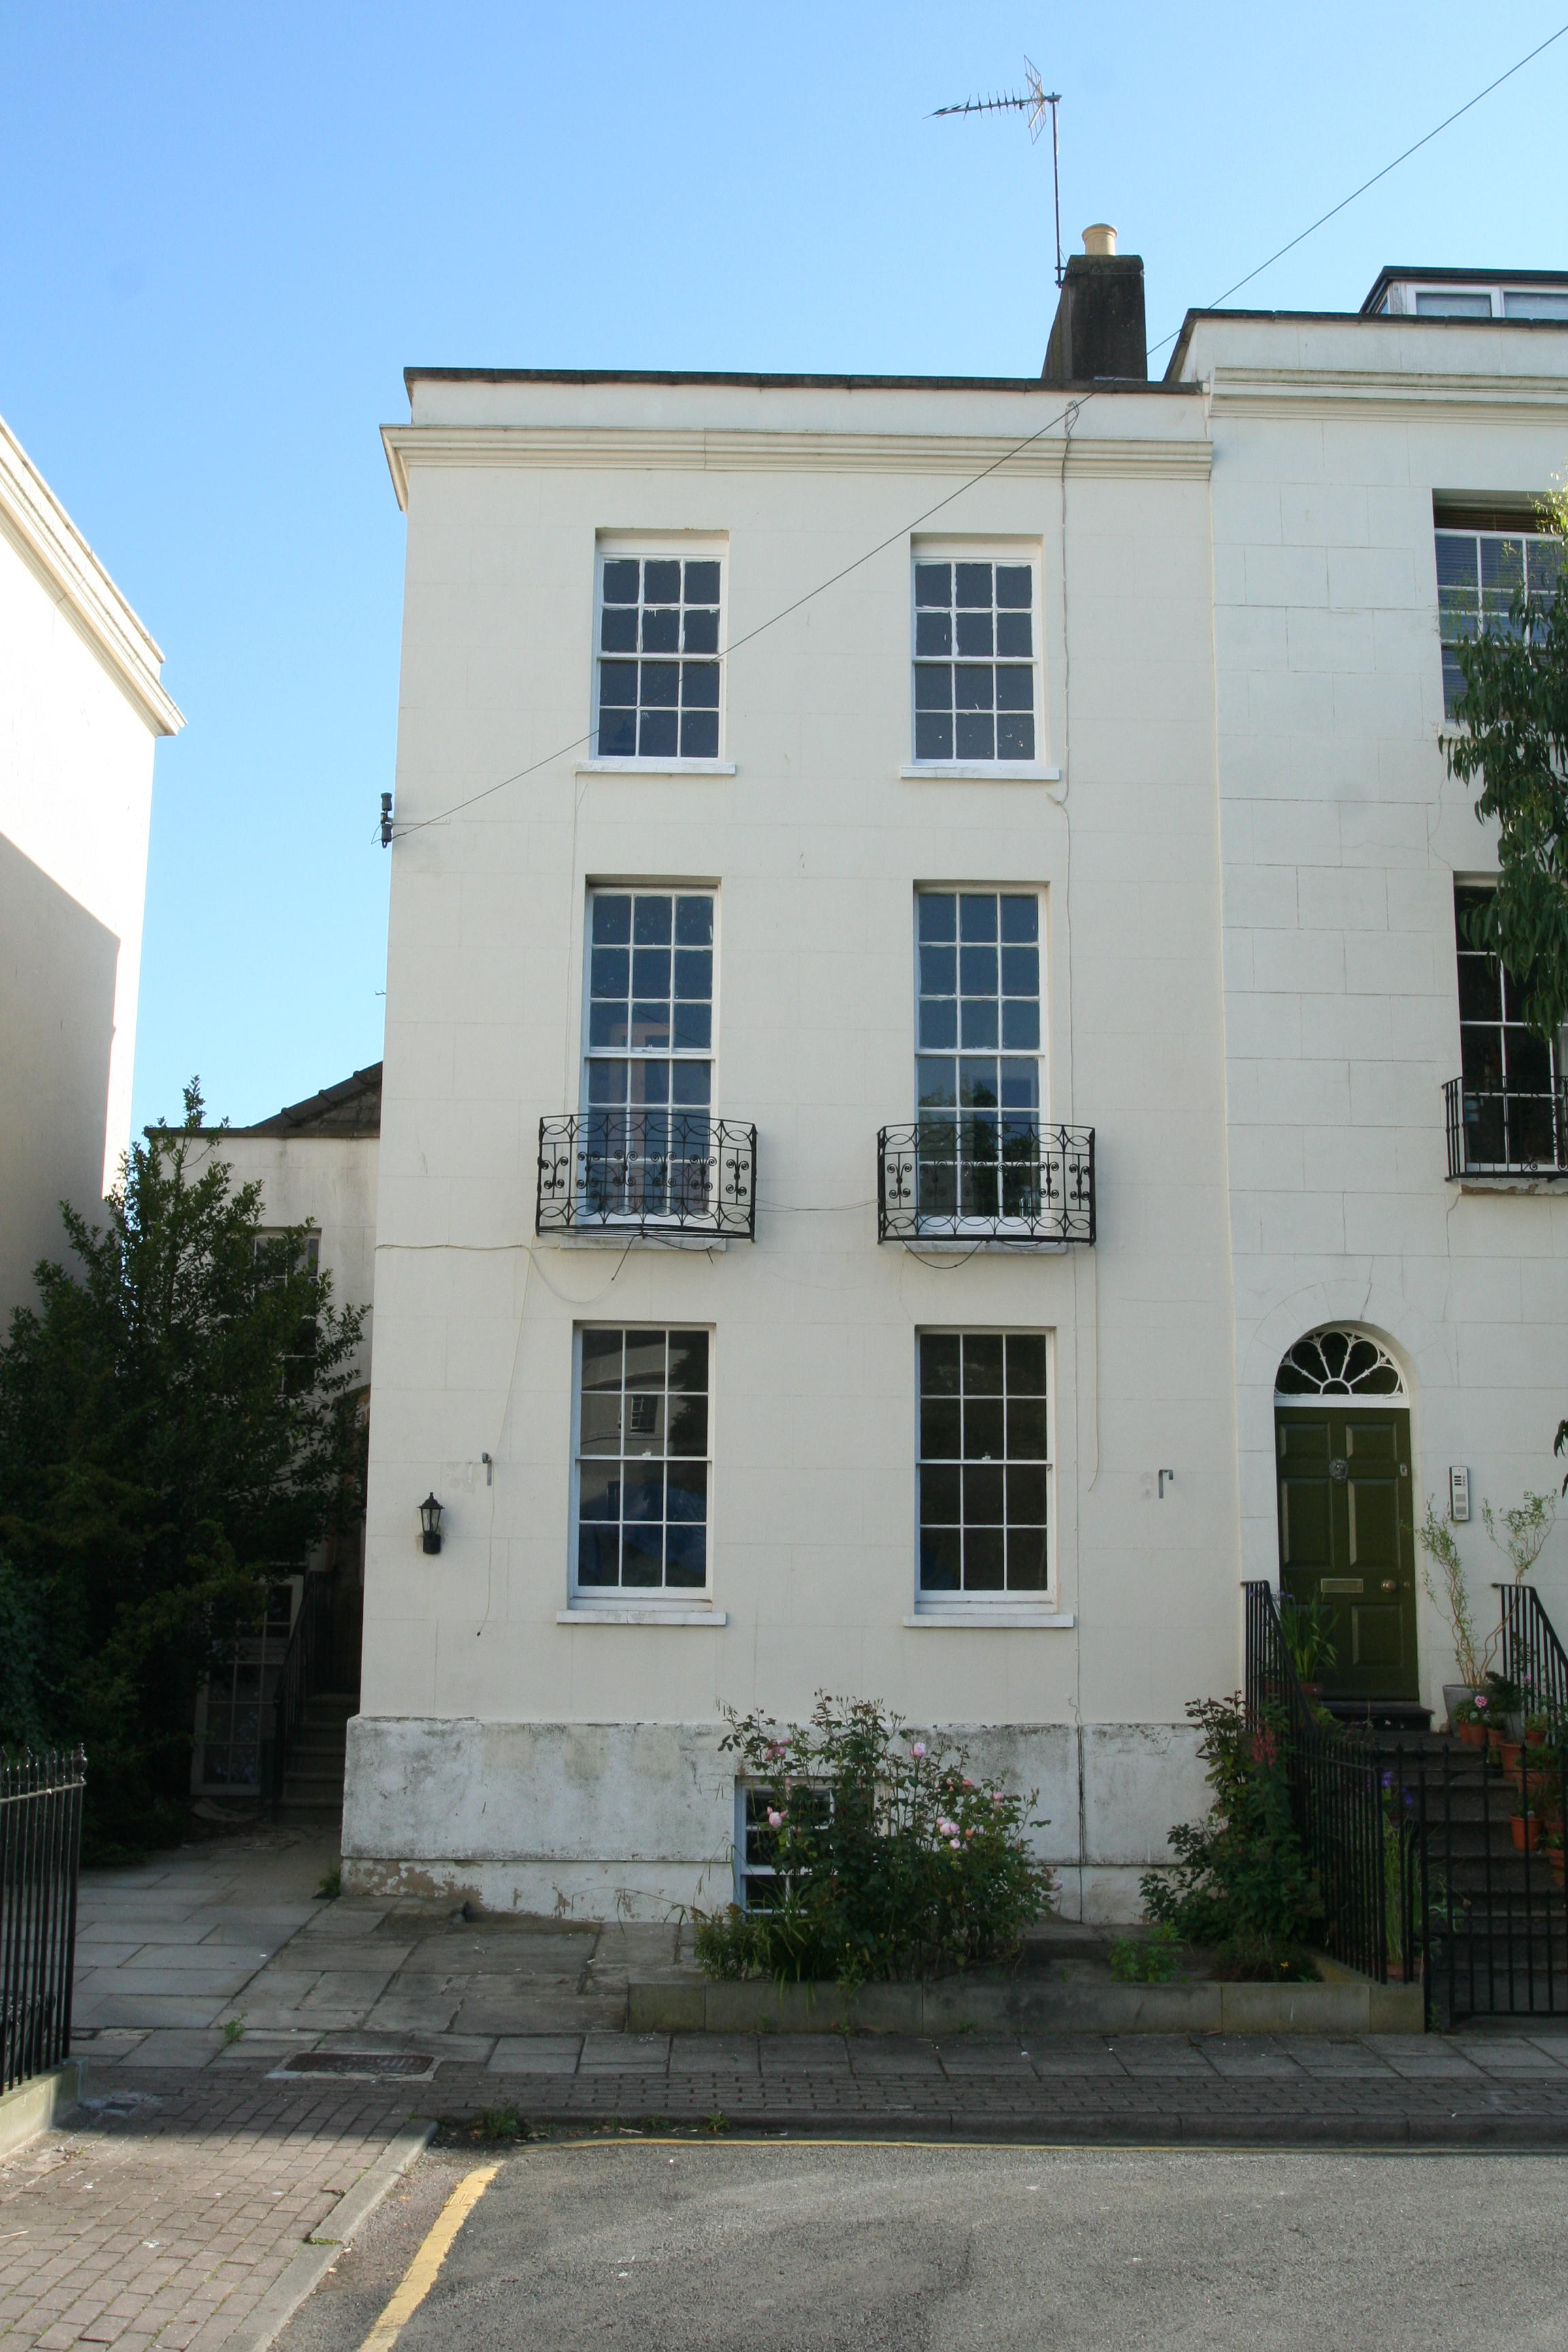 6 Bedroom Furnished House Share To Rent On Brunswick Square, Gloucester,  GL1 By Private ...